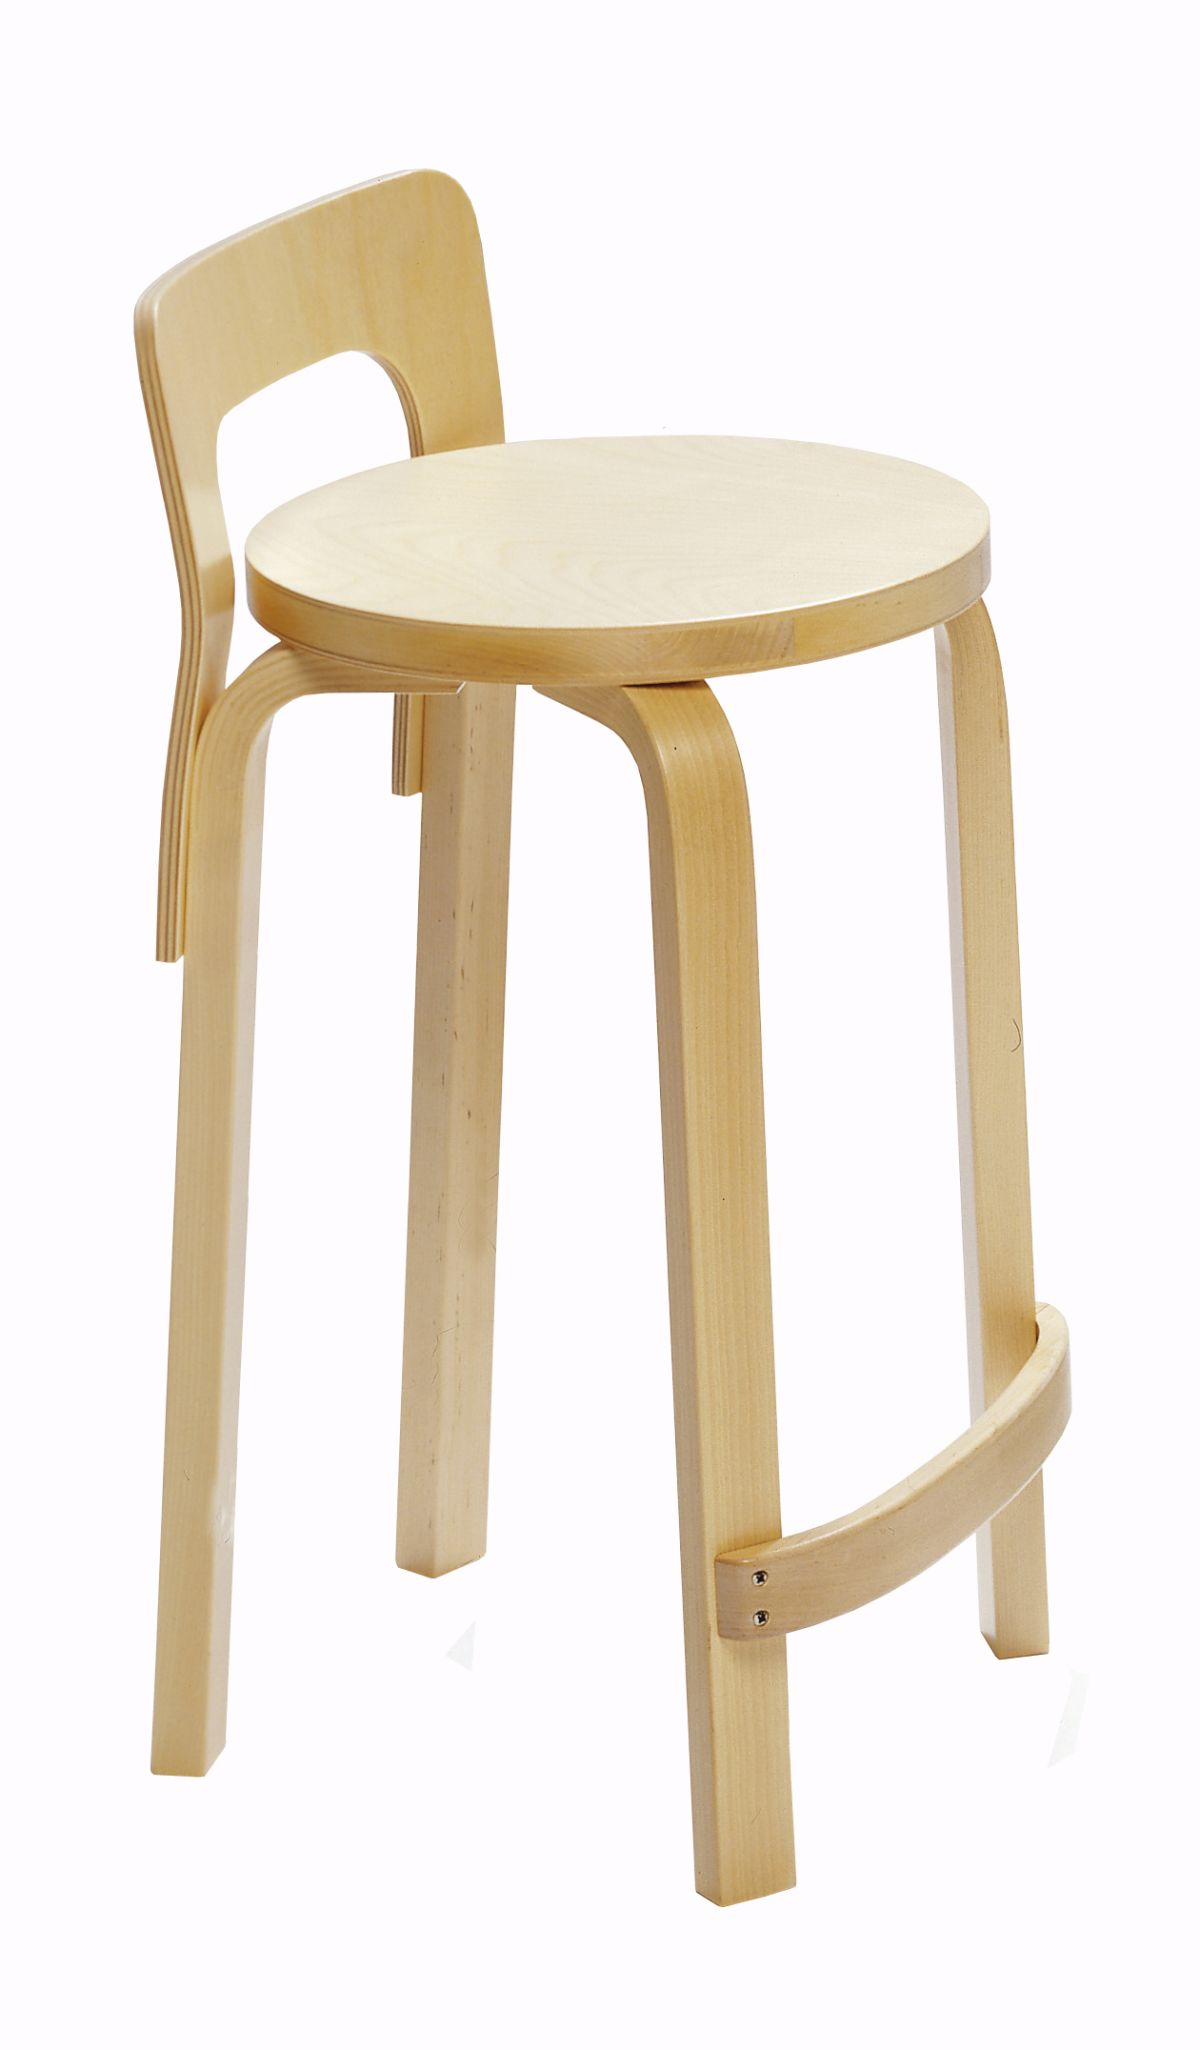 High Chair K65 clear lacquer